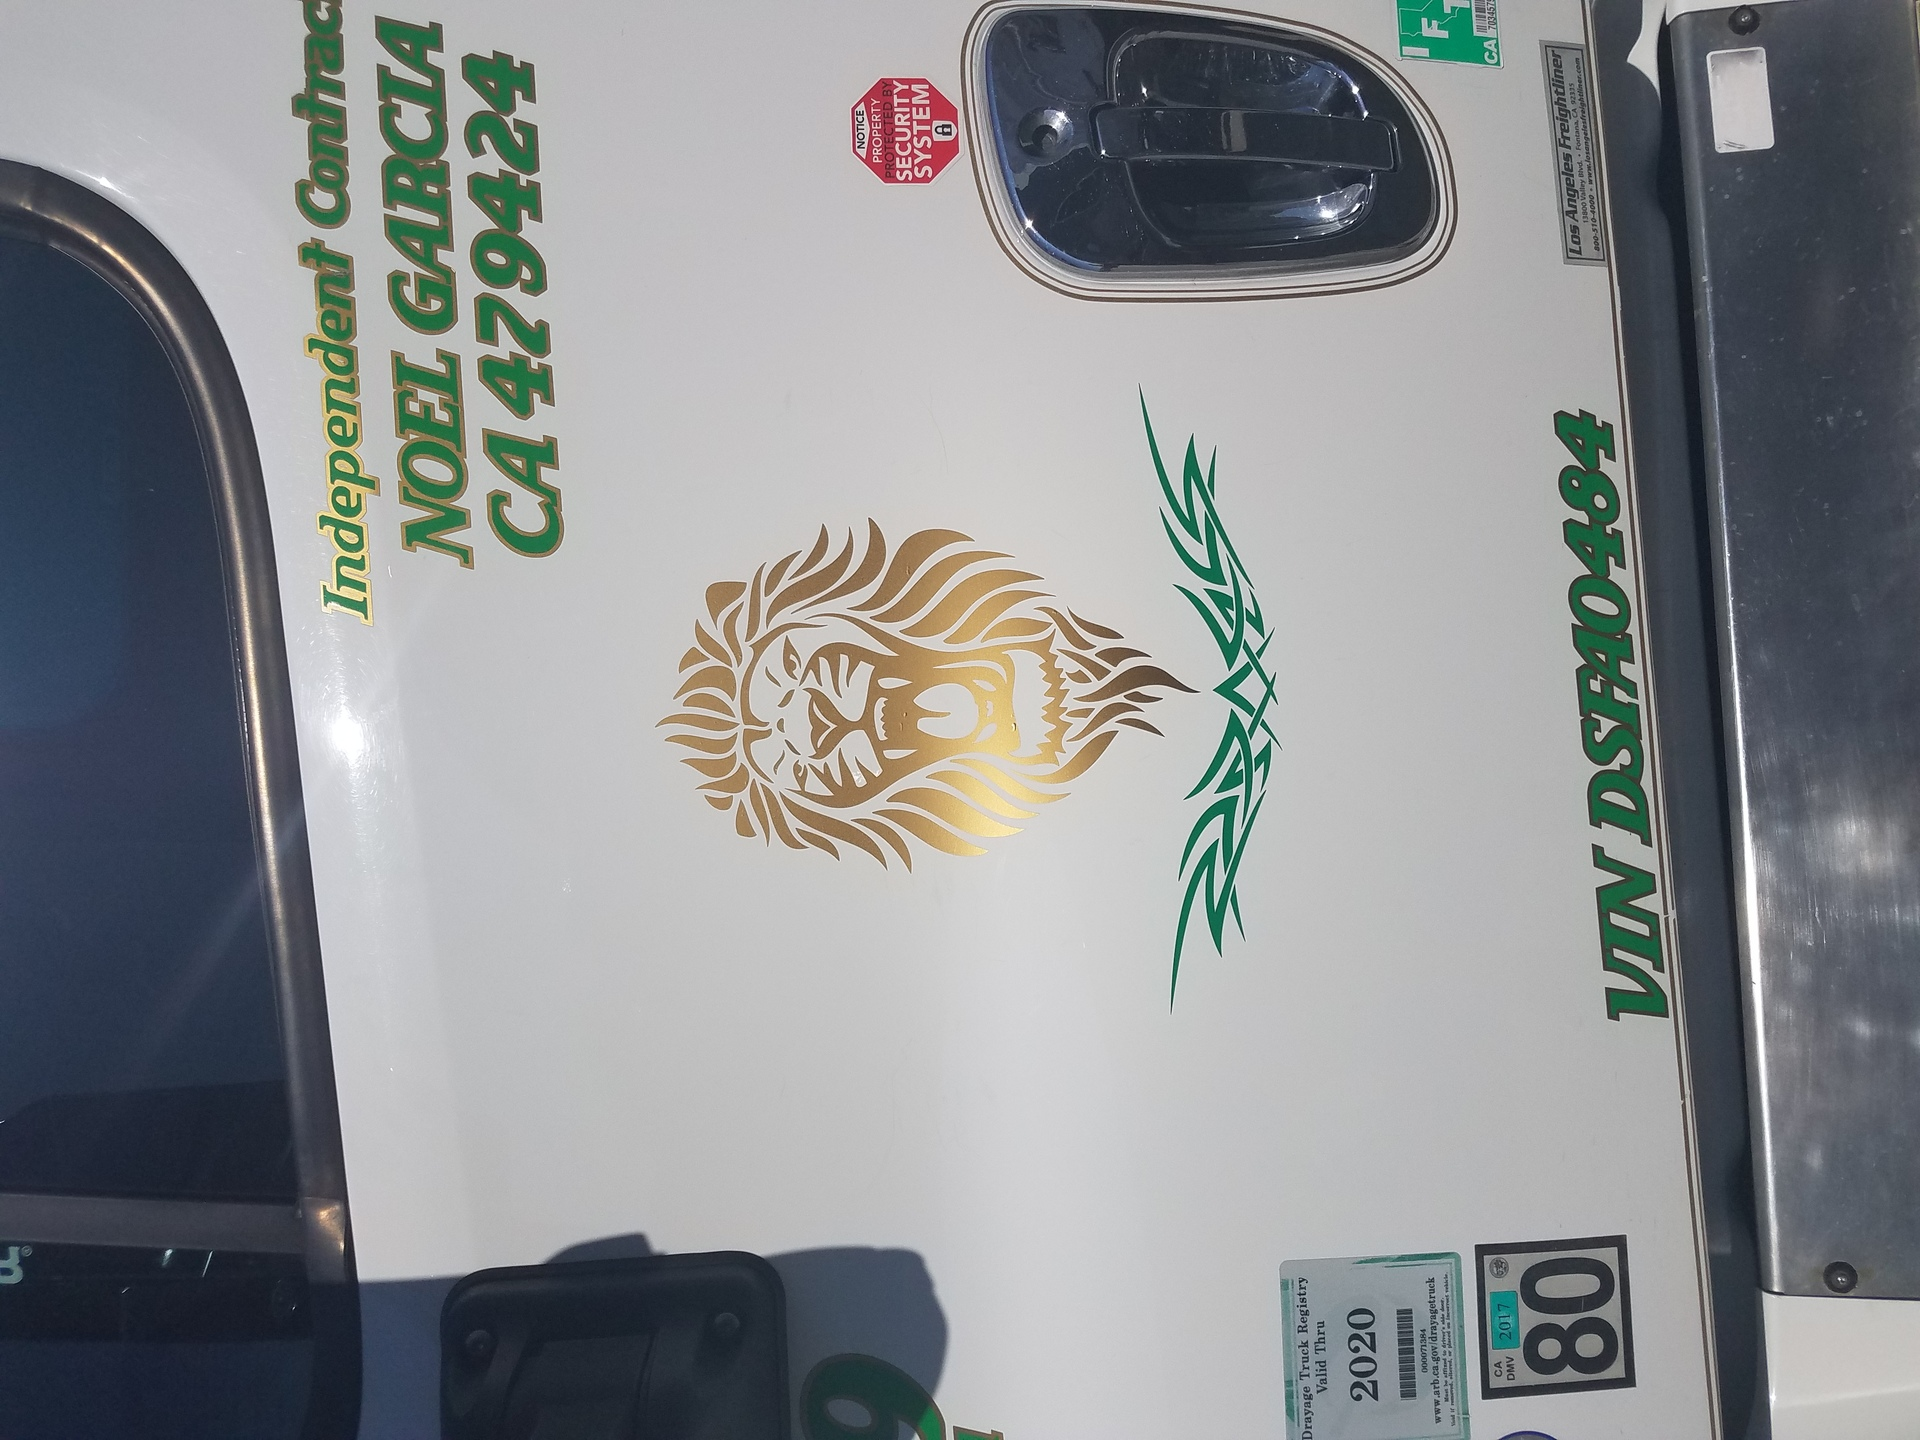 Noel's photograph of their Lion Roaring Sticker